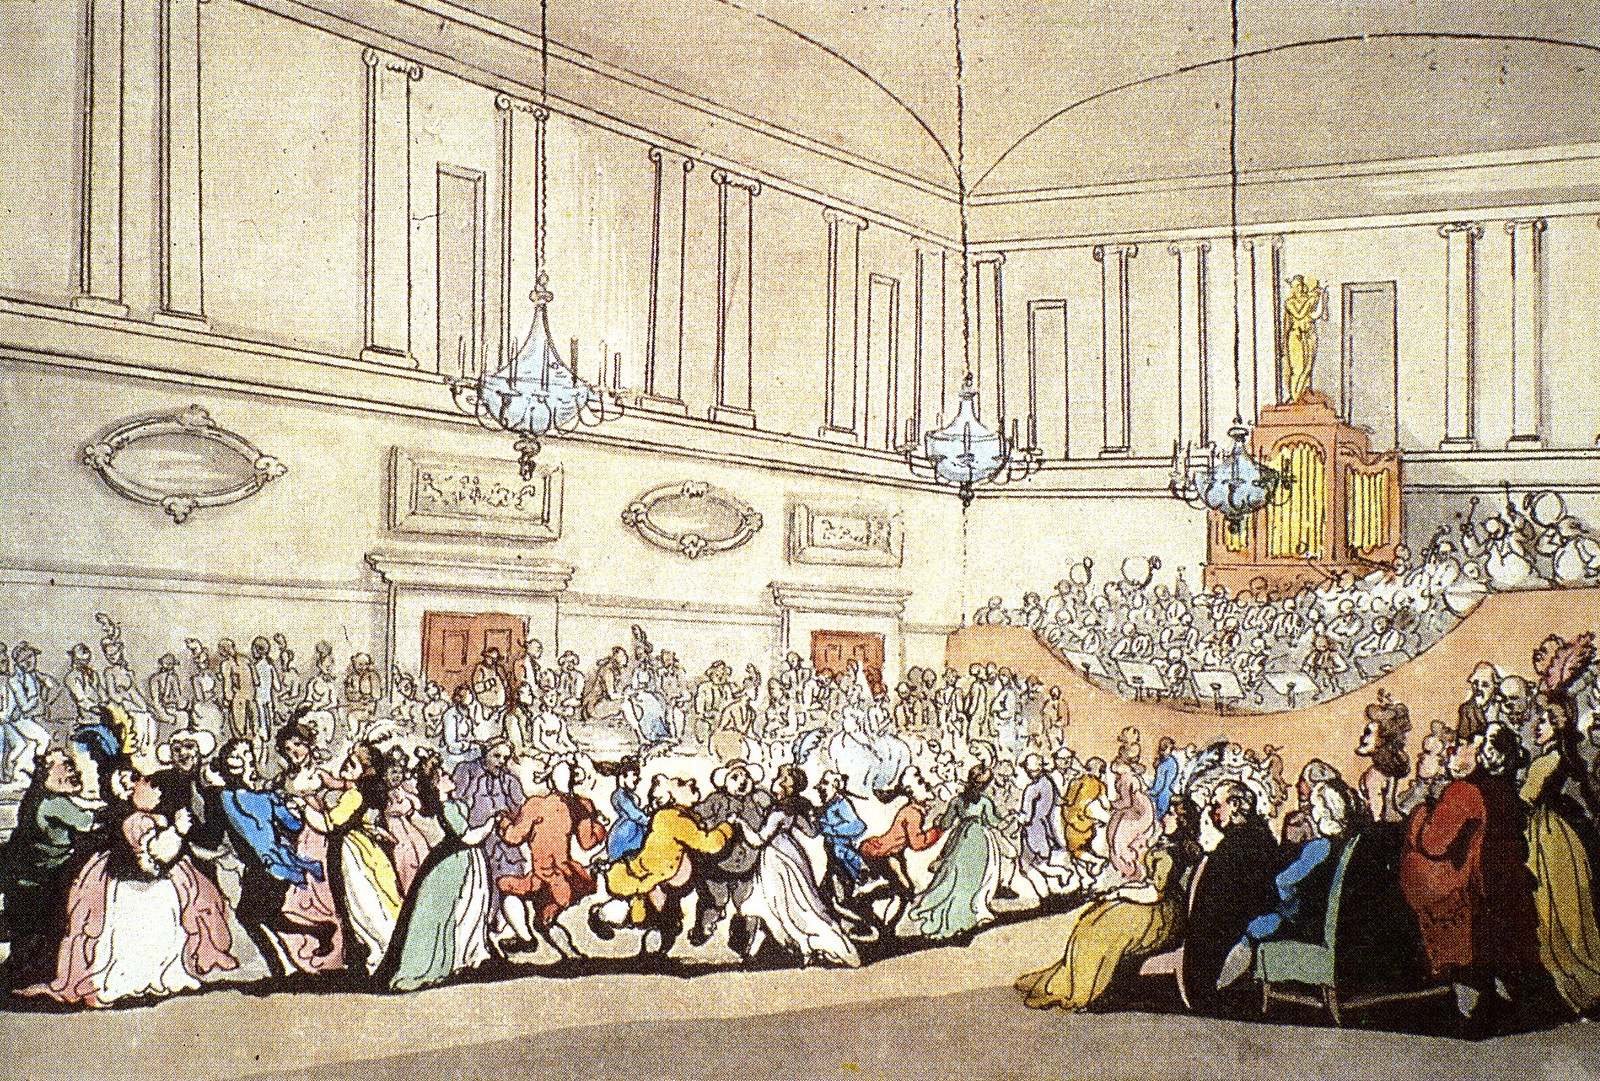 18th century illustration of the The Assembly Rooms